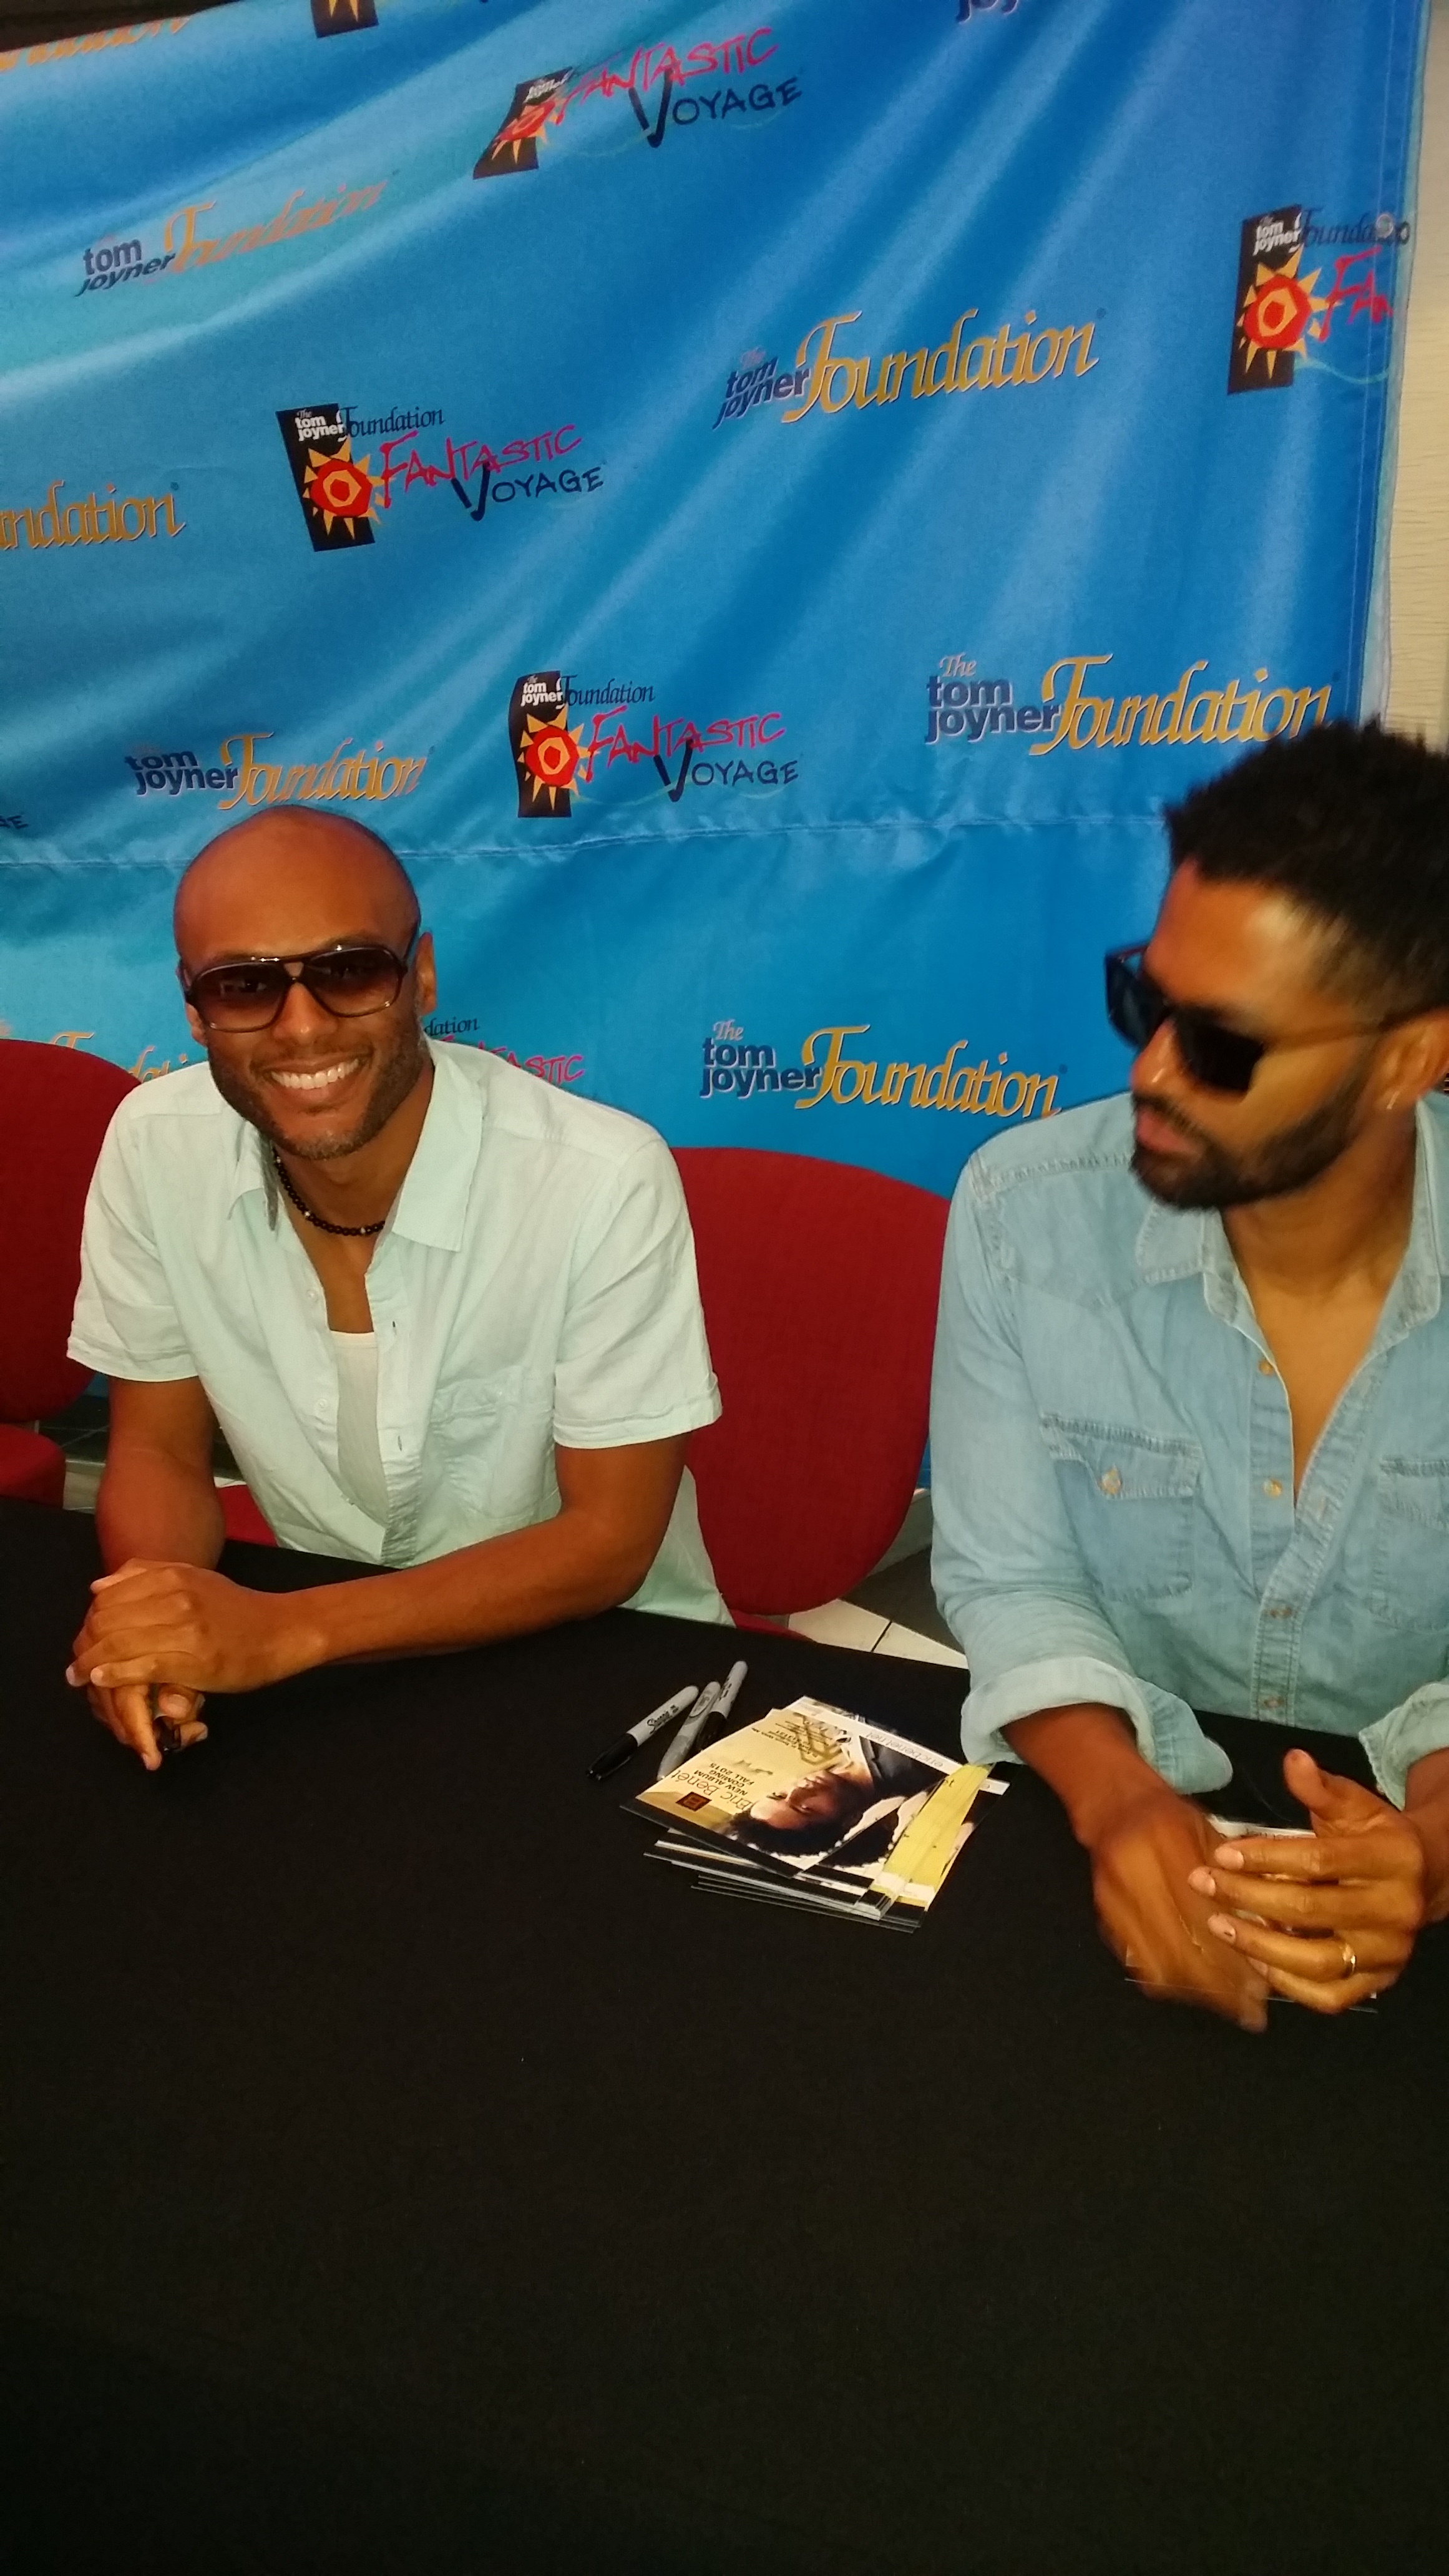 The men of R&B, Kenny Lattimore and Eric Benet